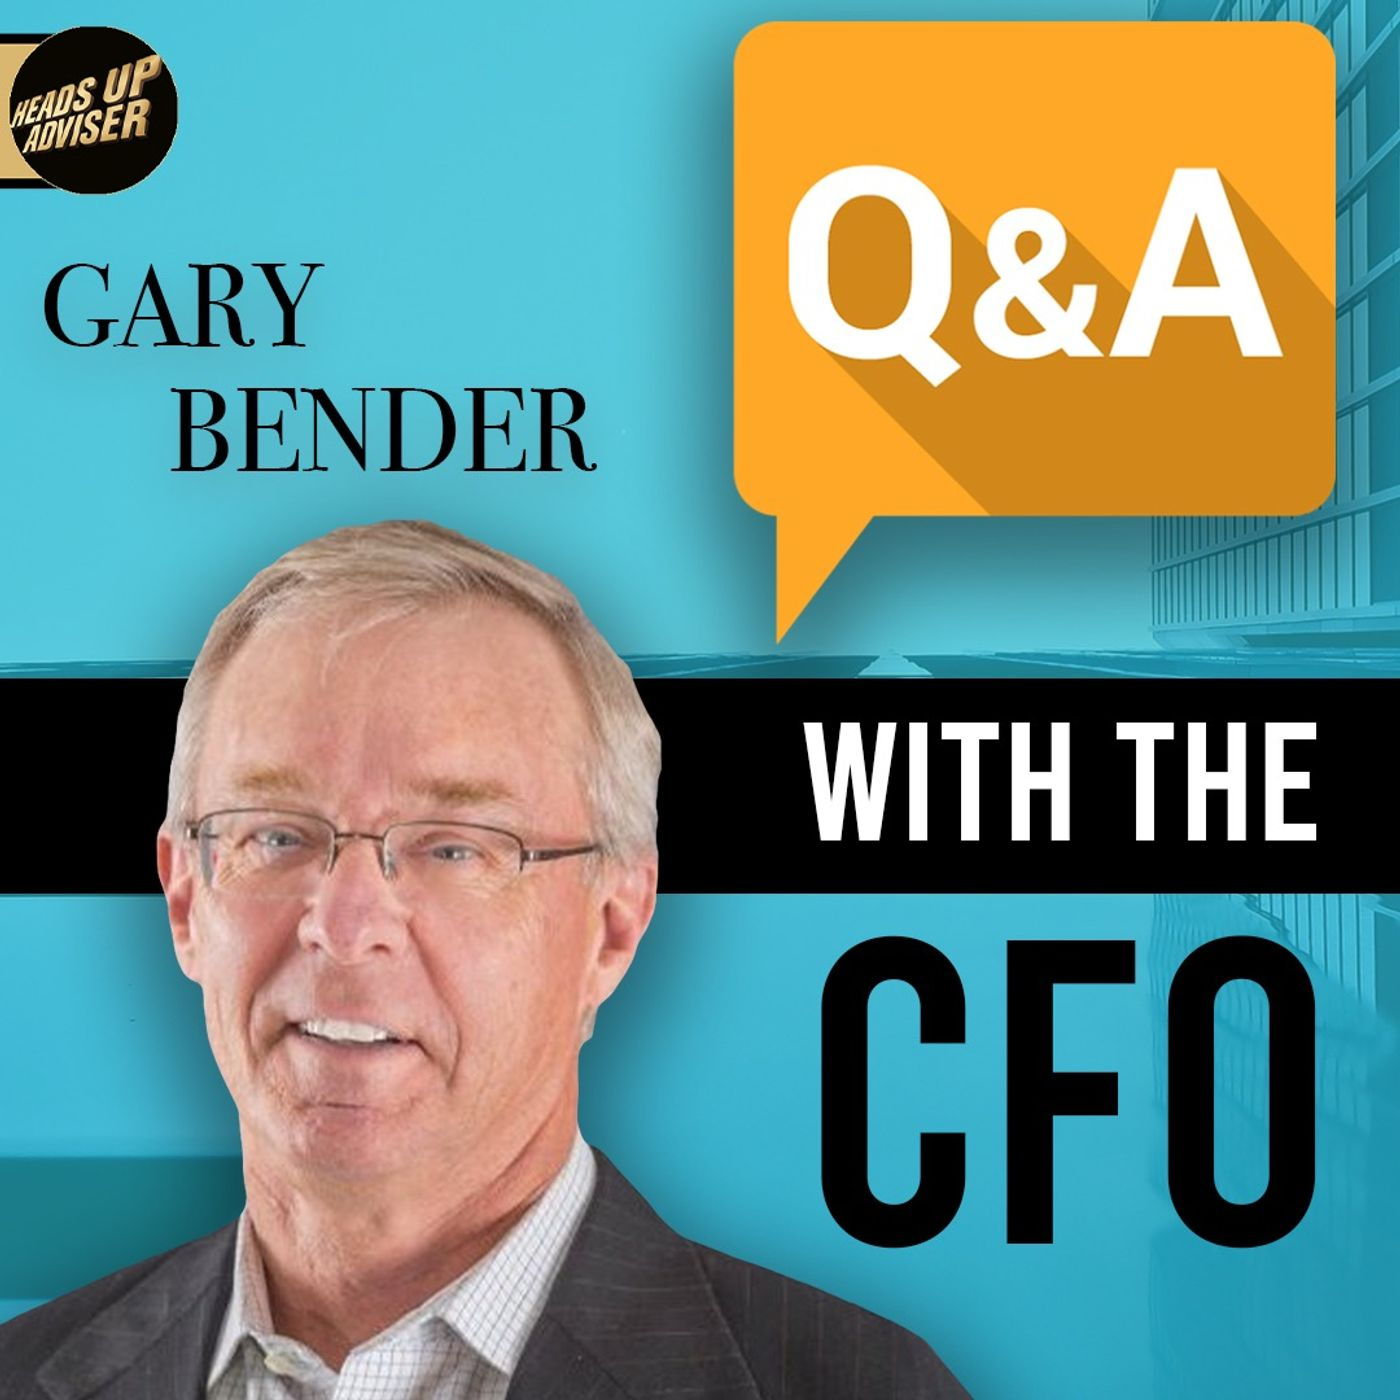 Q&A with the CFO with Gary Bender (How Insurance Brokers Can Close The Deal With The CFO)